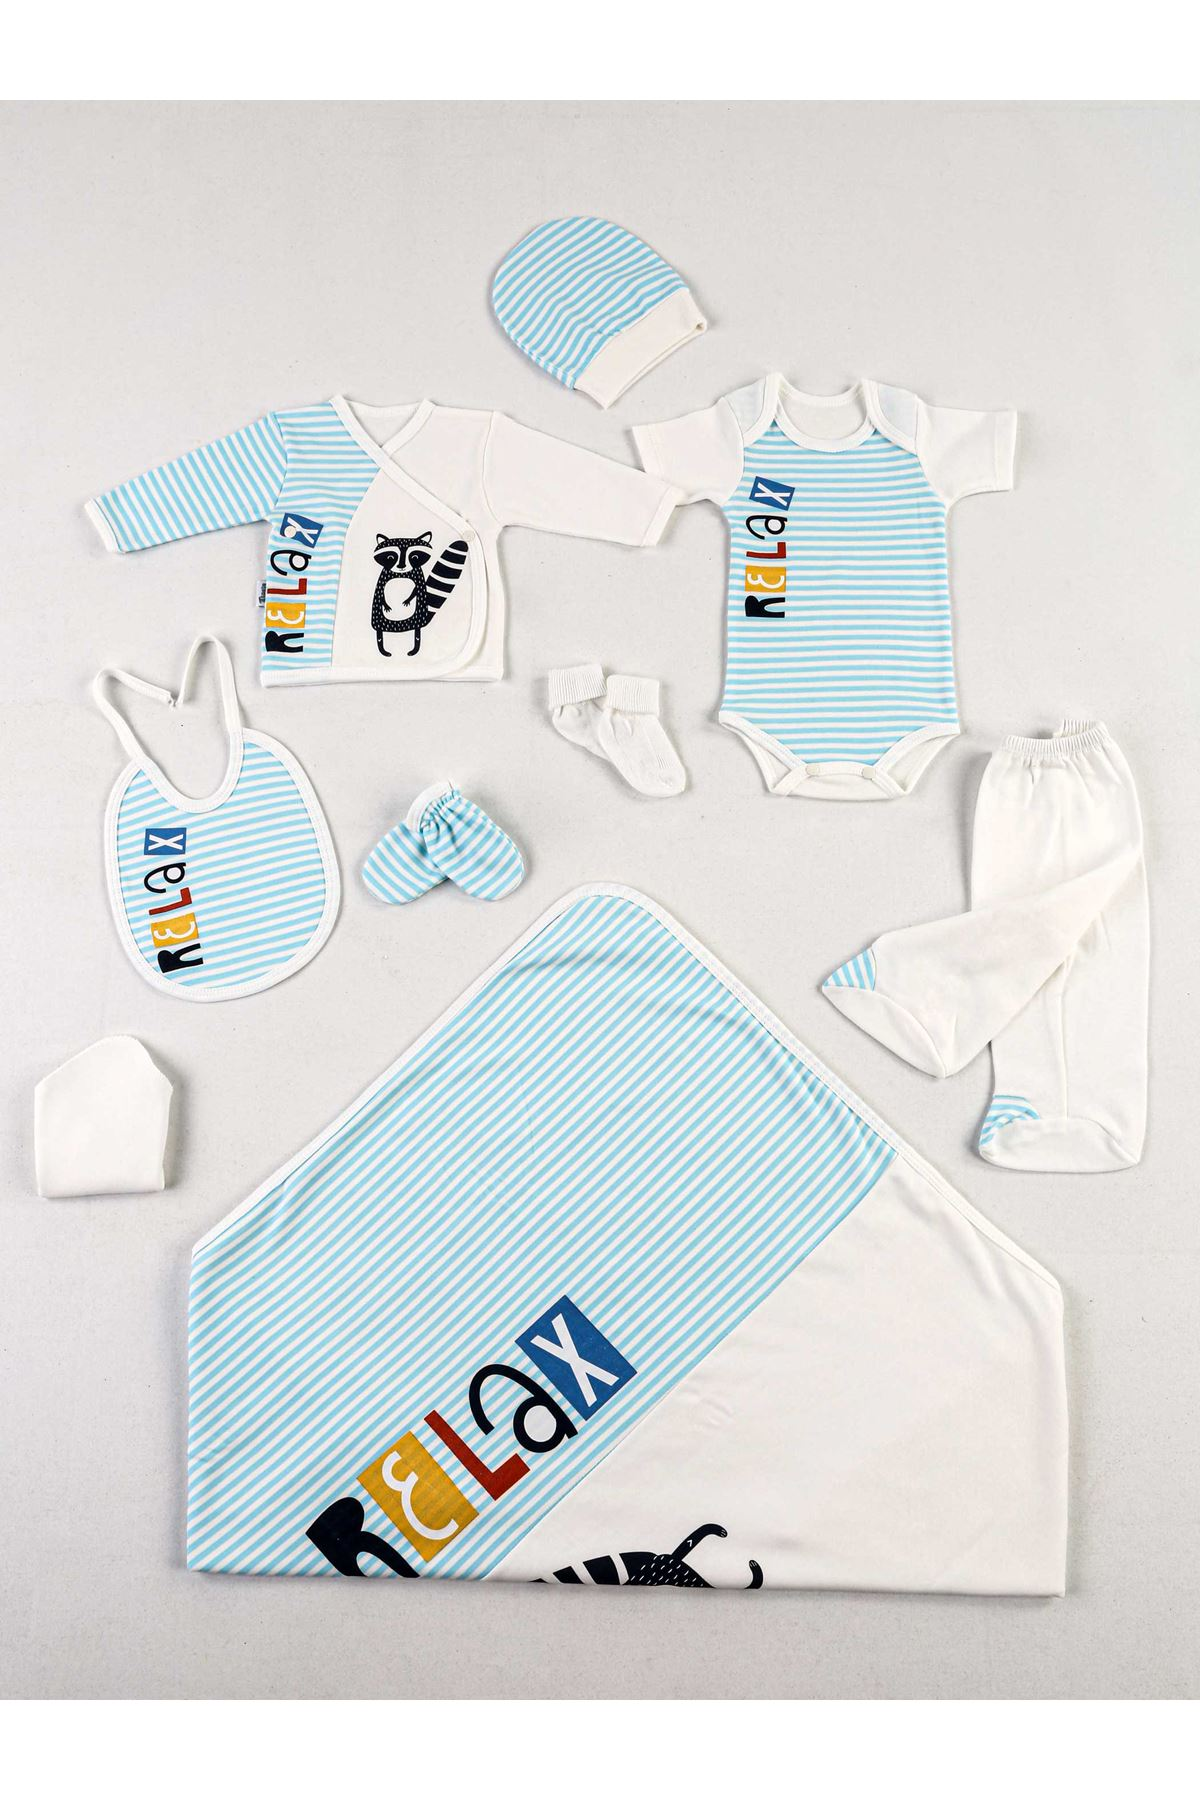 Turquoise White Relax 10 Lu Newborn Male Baby Hospital Output